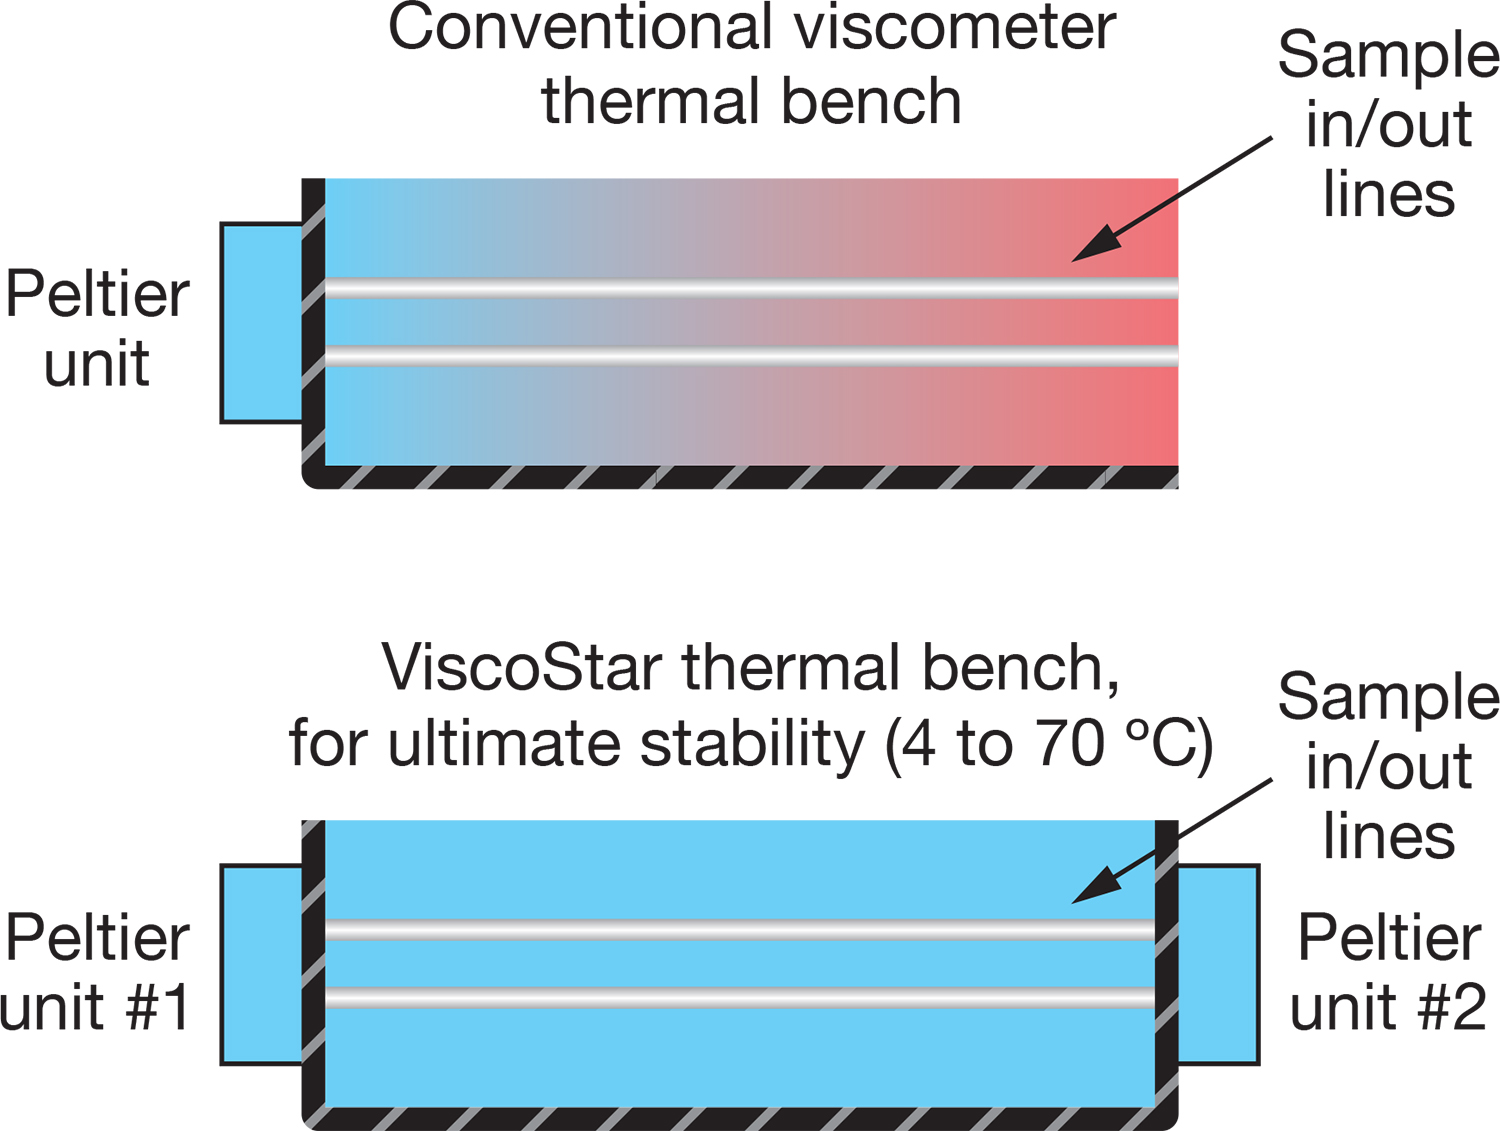 Dual-Peltier thermal control of the ViscoStar